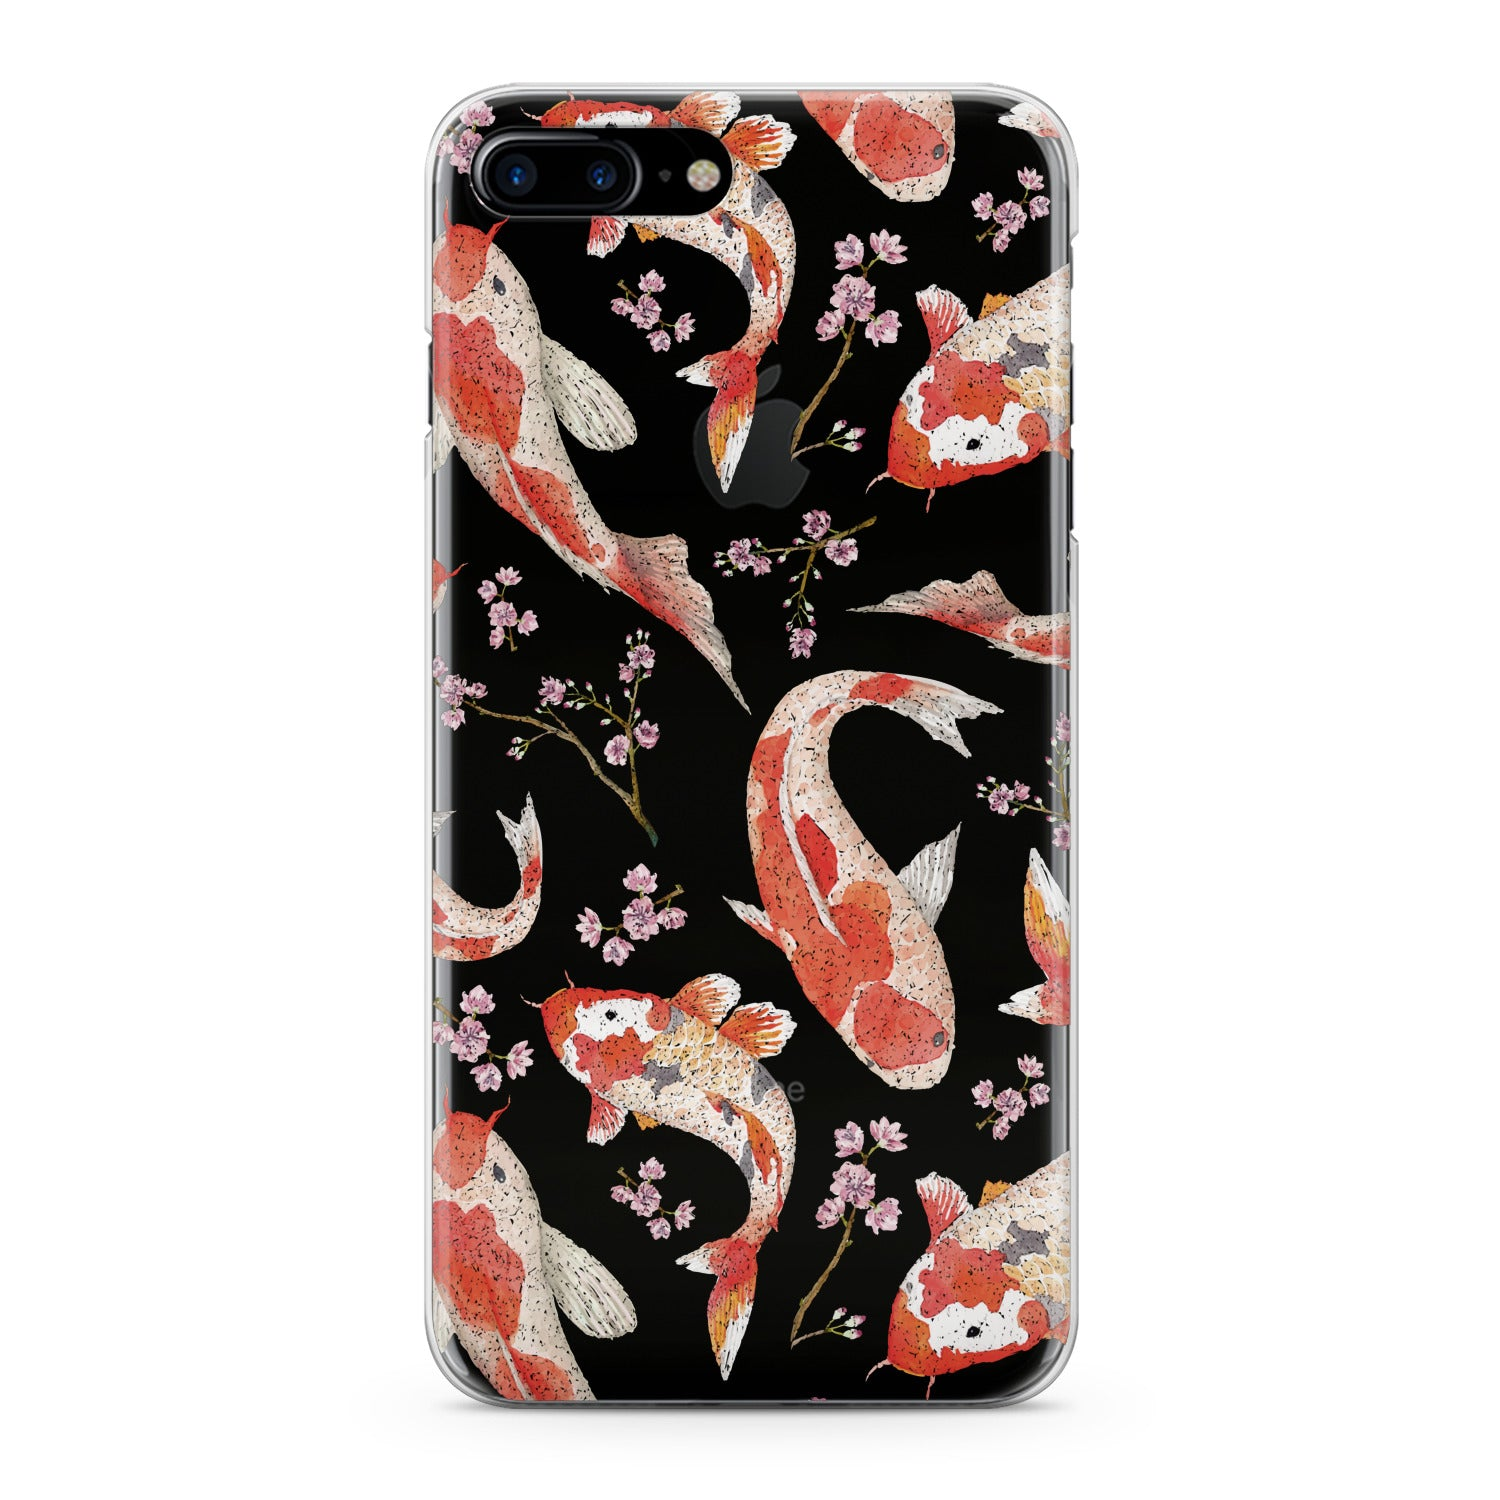 Lex Altern Orange Koi Fishes Phone Case for your iPhone & Android phone.